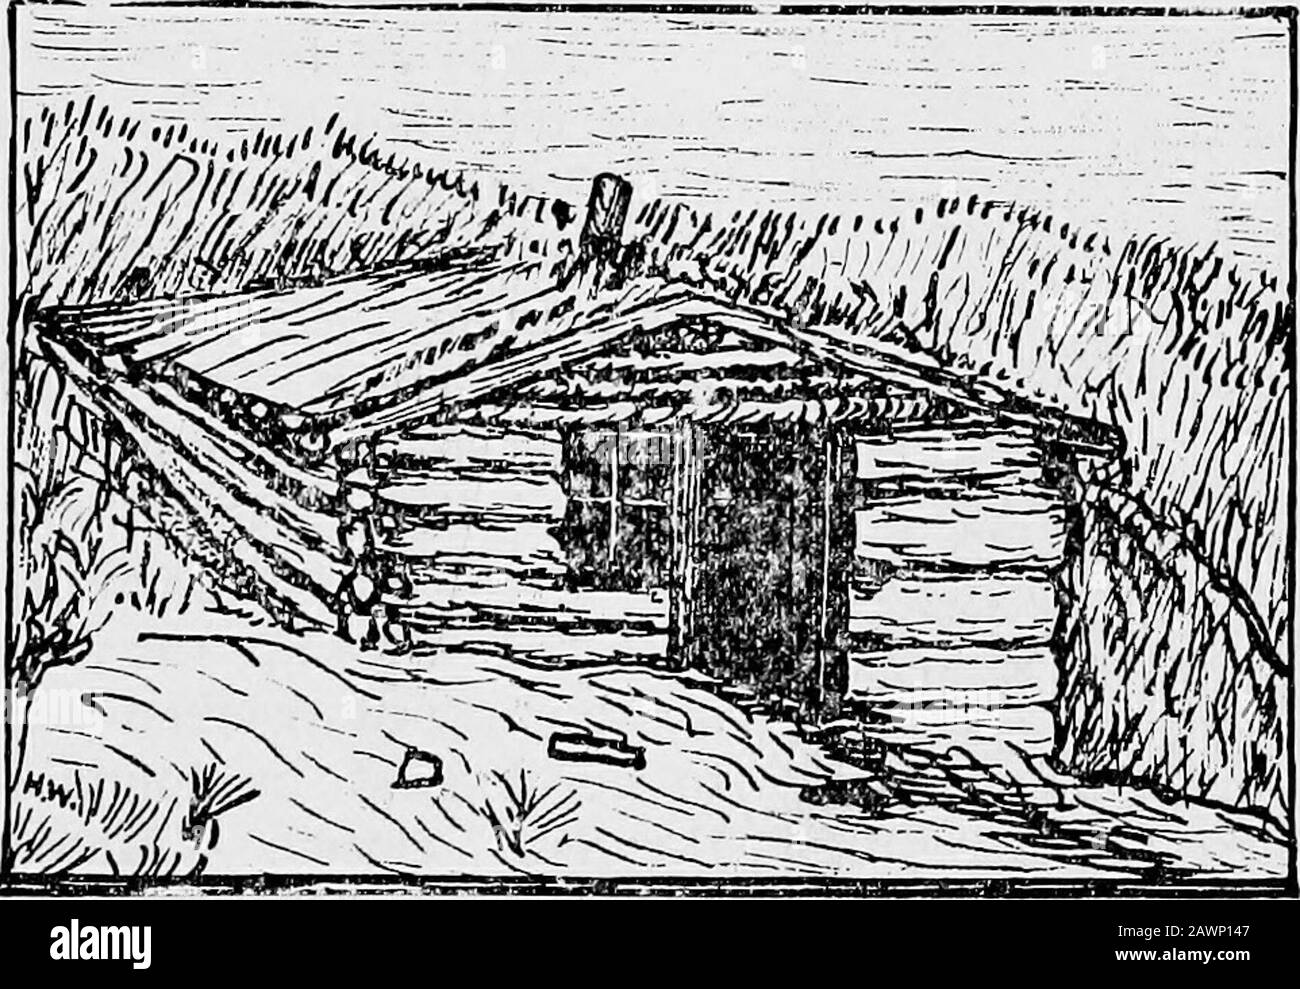 The trail of the Loup; being a history of the Loup River region . also a sort of hostelry—no pay being taken, let it beknown—from later comers. Its hospitable roof sheltered many a wearywayfarer in the early days. Furthermore, in these unpretentious quarterswas tried the first criminal suit in the annals of the new county; here wasfield the first school for the upper half of the county; and here for severalyears, was the county treasurers ofBce located. We cannot but regretthat this modest, though historic landmark should have been demolished,not even a photograph remaining. The cut here inser Stock Photo